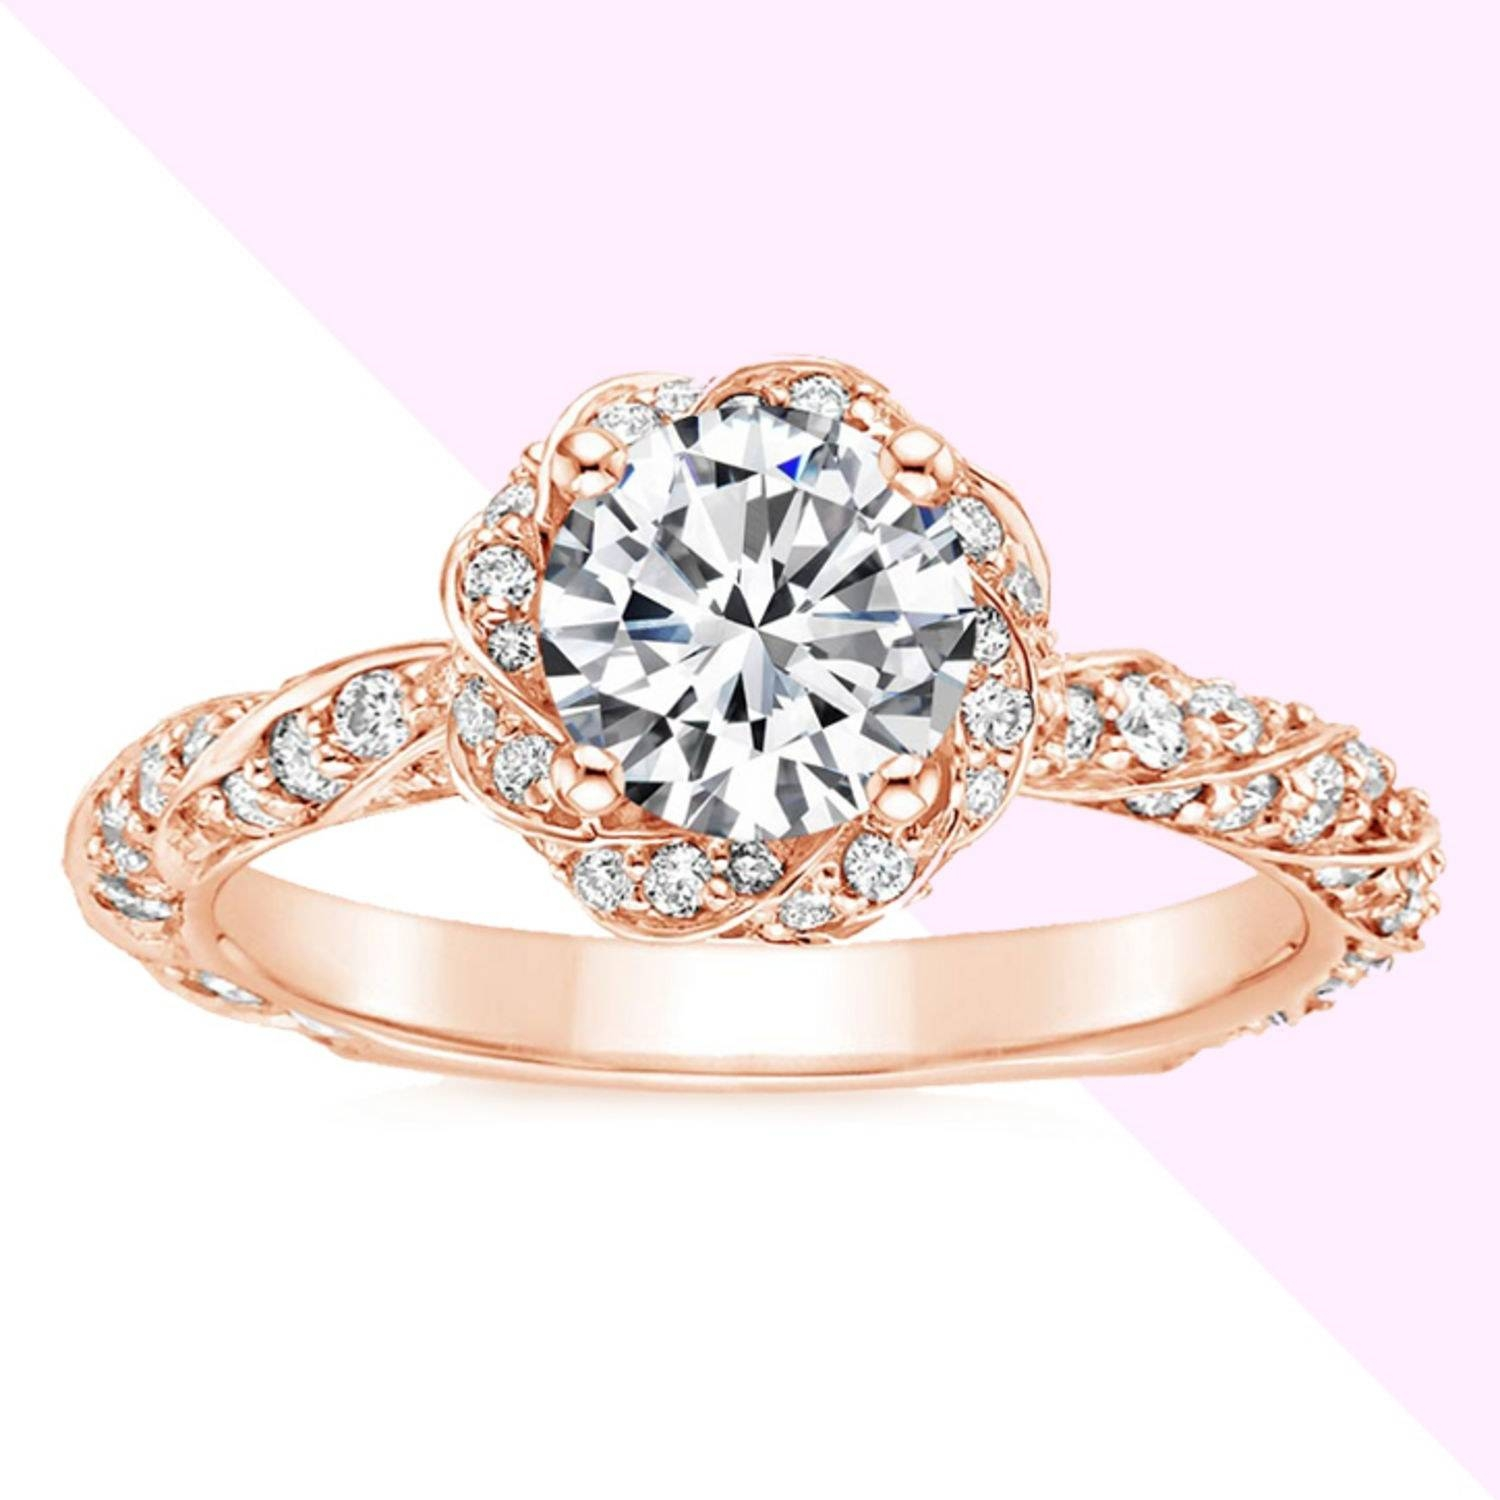 Wedding Rings : Engagement Ring Trendsdecade Newest Wedding Throughout Newest Style Engagement Rings (View 3 of 15)